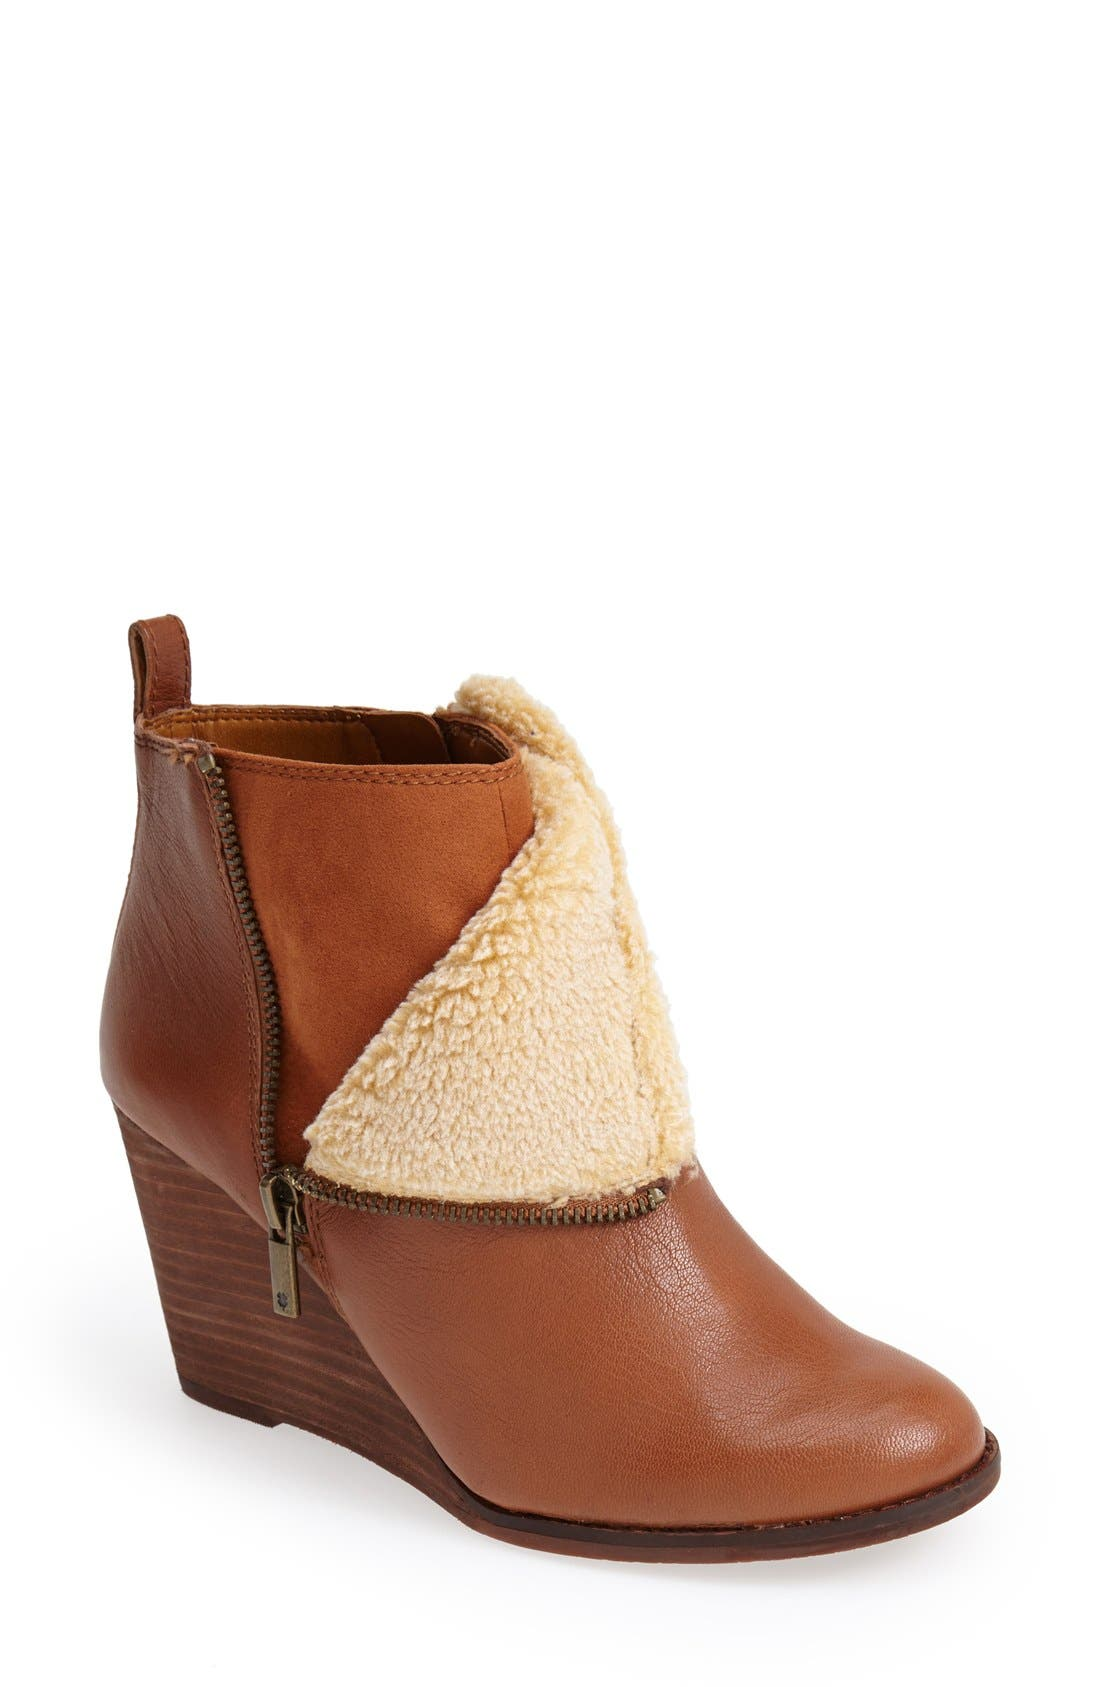 Alternate Image 1 Selected - Lucky Brand 'Yorque' Wedge Leather Bootie (Women)